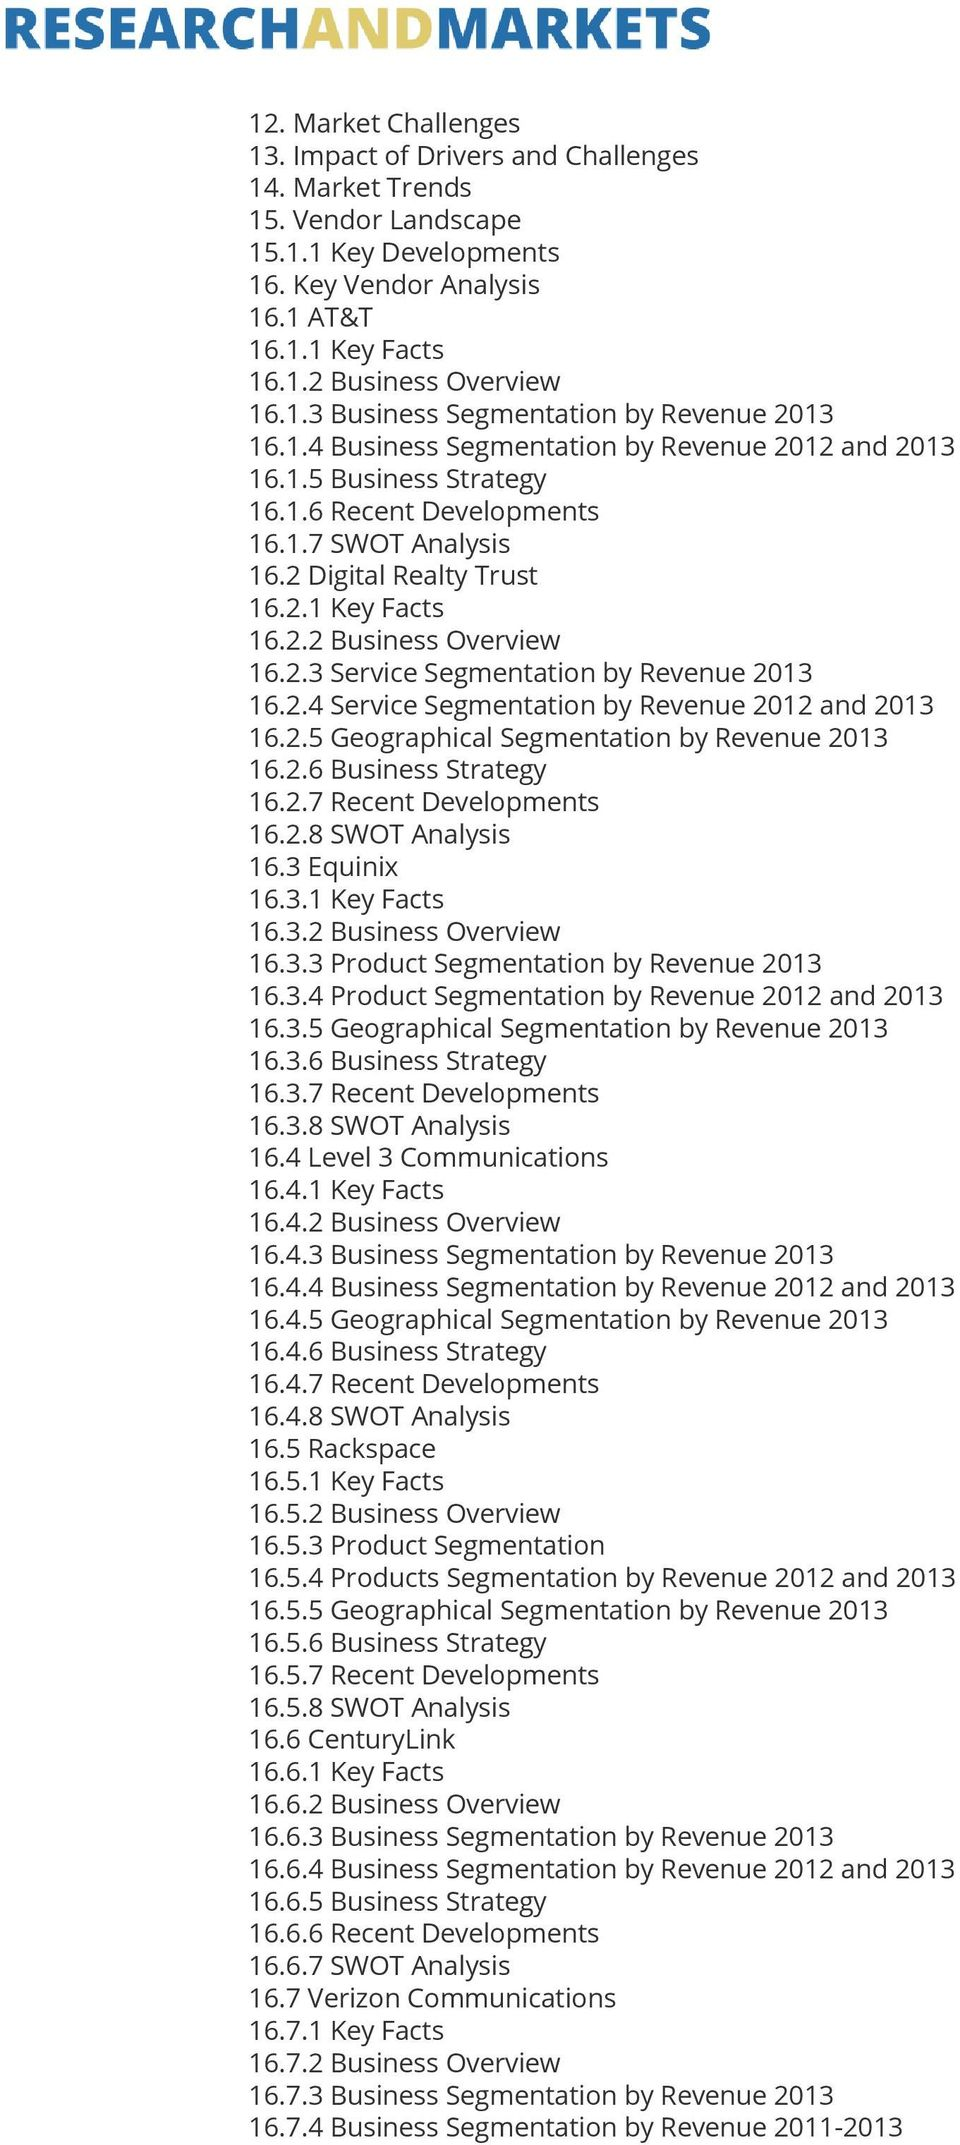 2.2 Business Overview 16.2.3 Service Segmentation by Revenue 2013 16.2.4 Service Segmentation by Revenue 2012 and 2013 16.2.5 Geographical Segmentation by Revenue 2013 16.2.6 Business Strategy 16.2.7 Recent Developments 16.